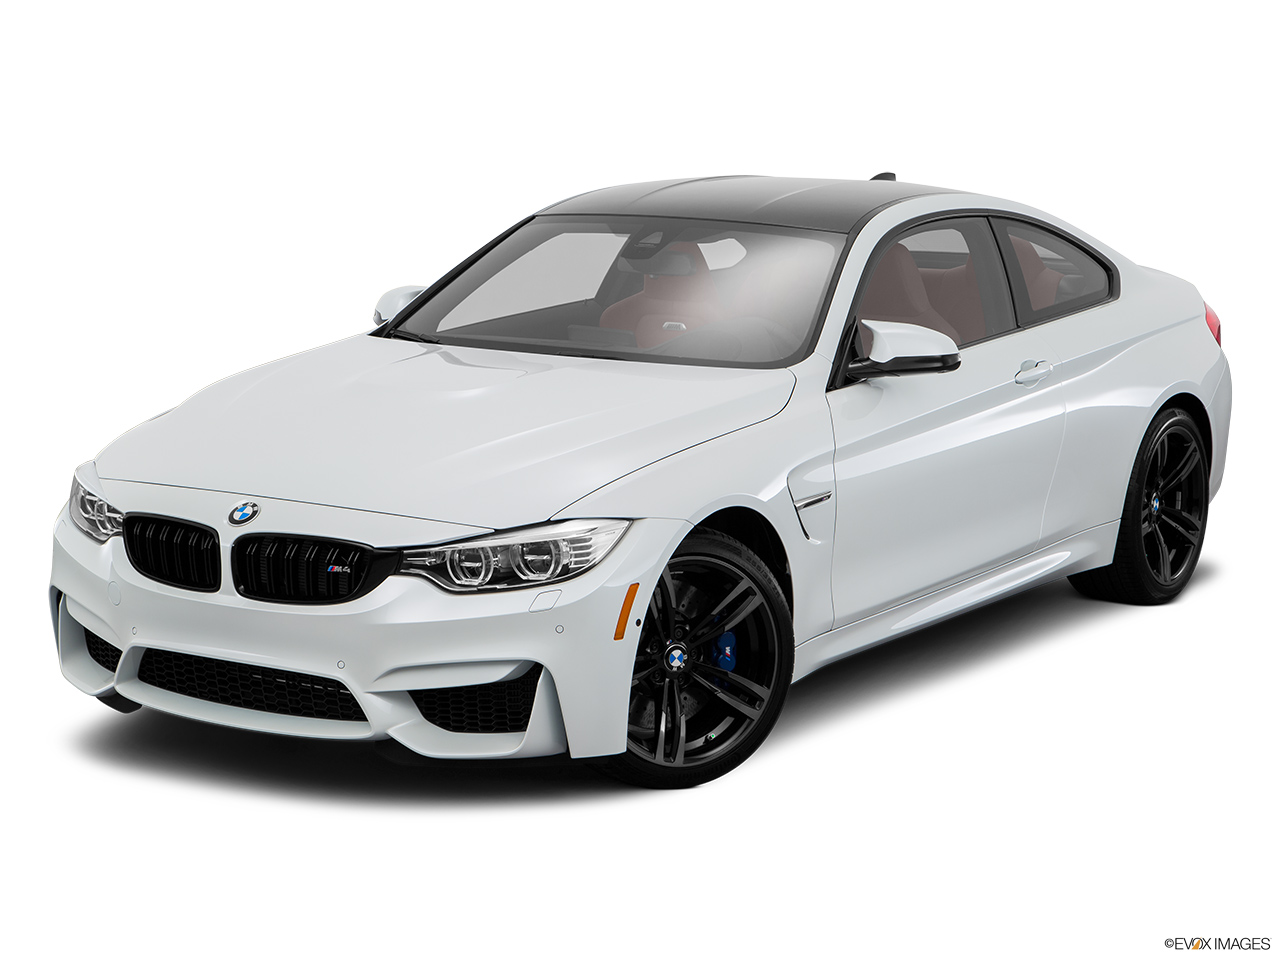 2017 Bmw M4 Coupe Prices In Uae Gulf Specs Amp Reviews For